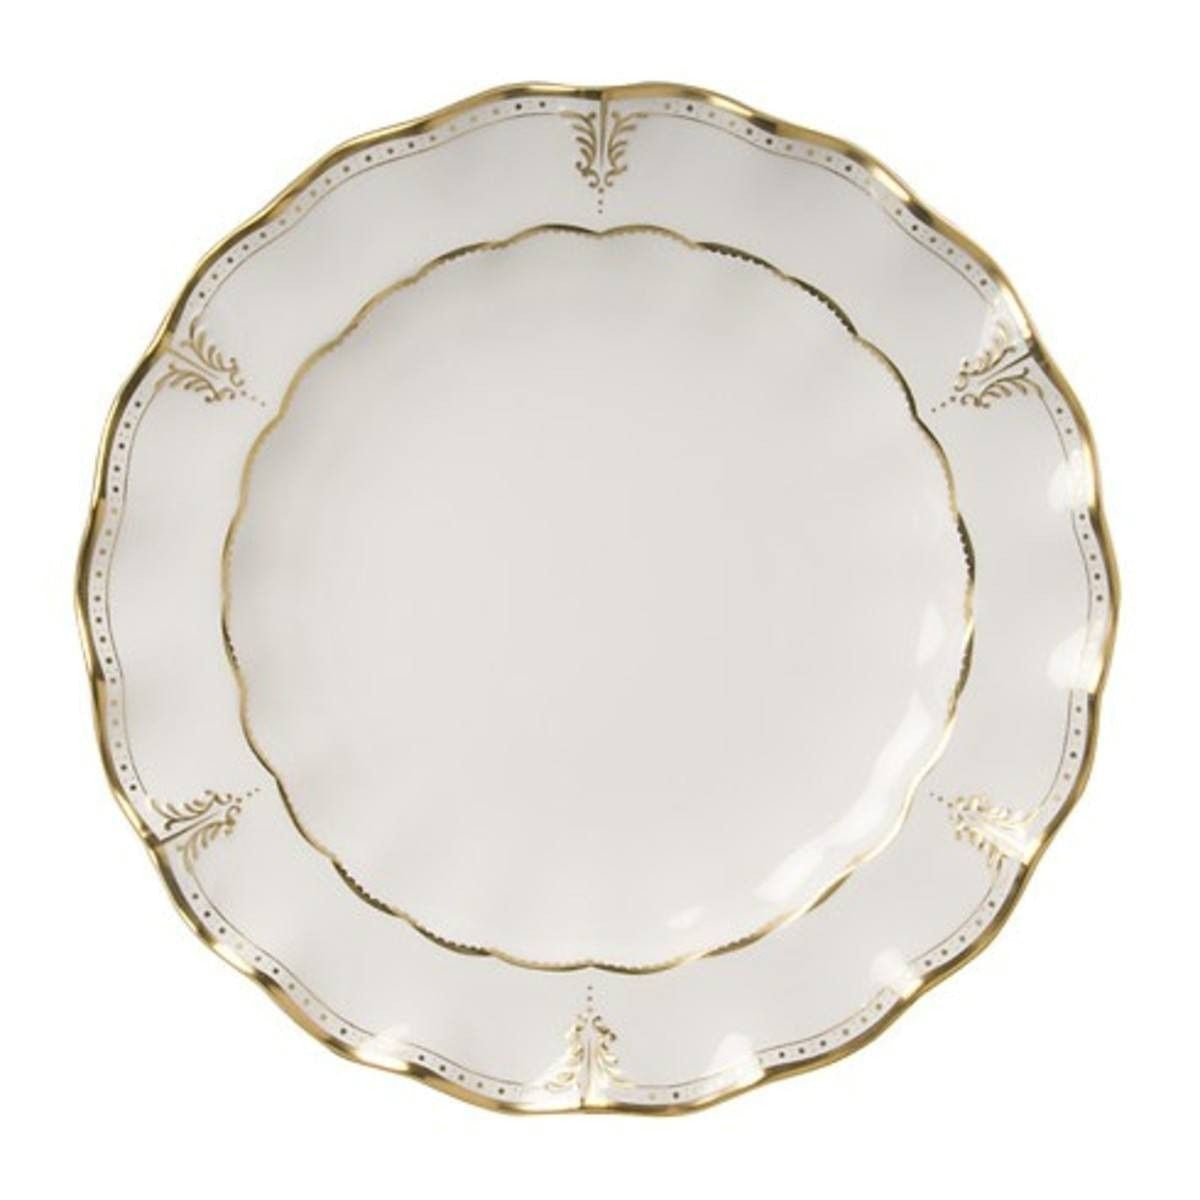 Elizabeth Gold Bread & Butter Plate